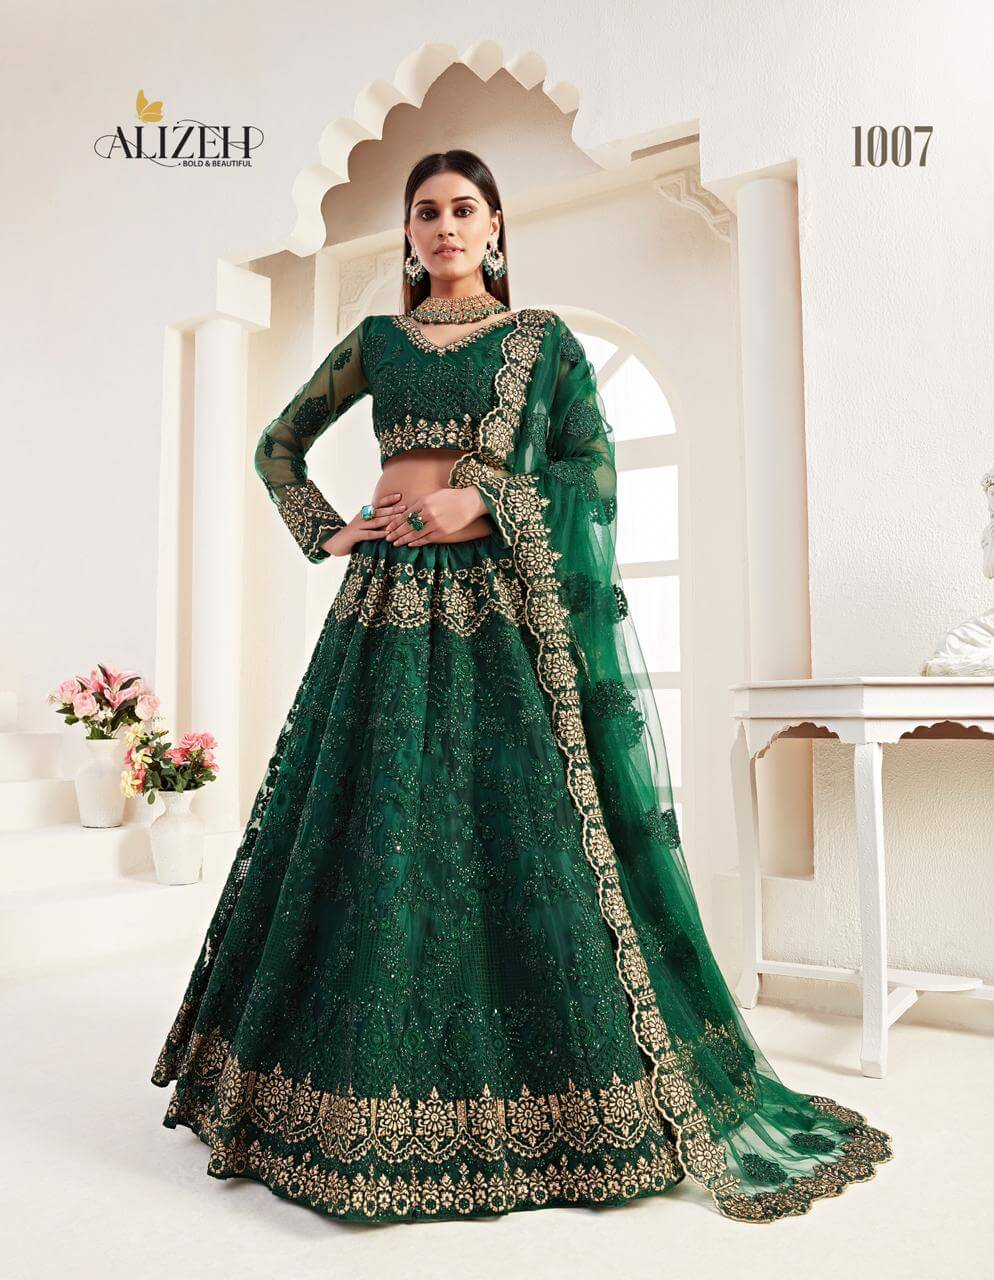 Alizeh Bridal Heritage Vol 2 collection 10